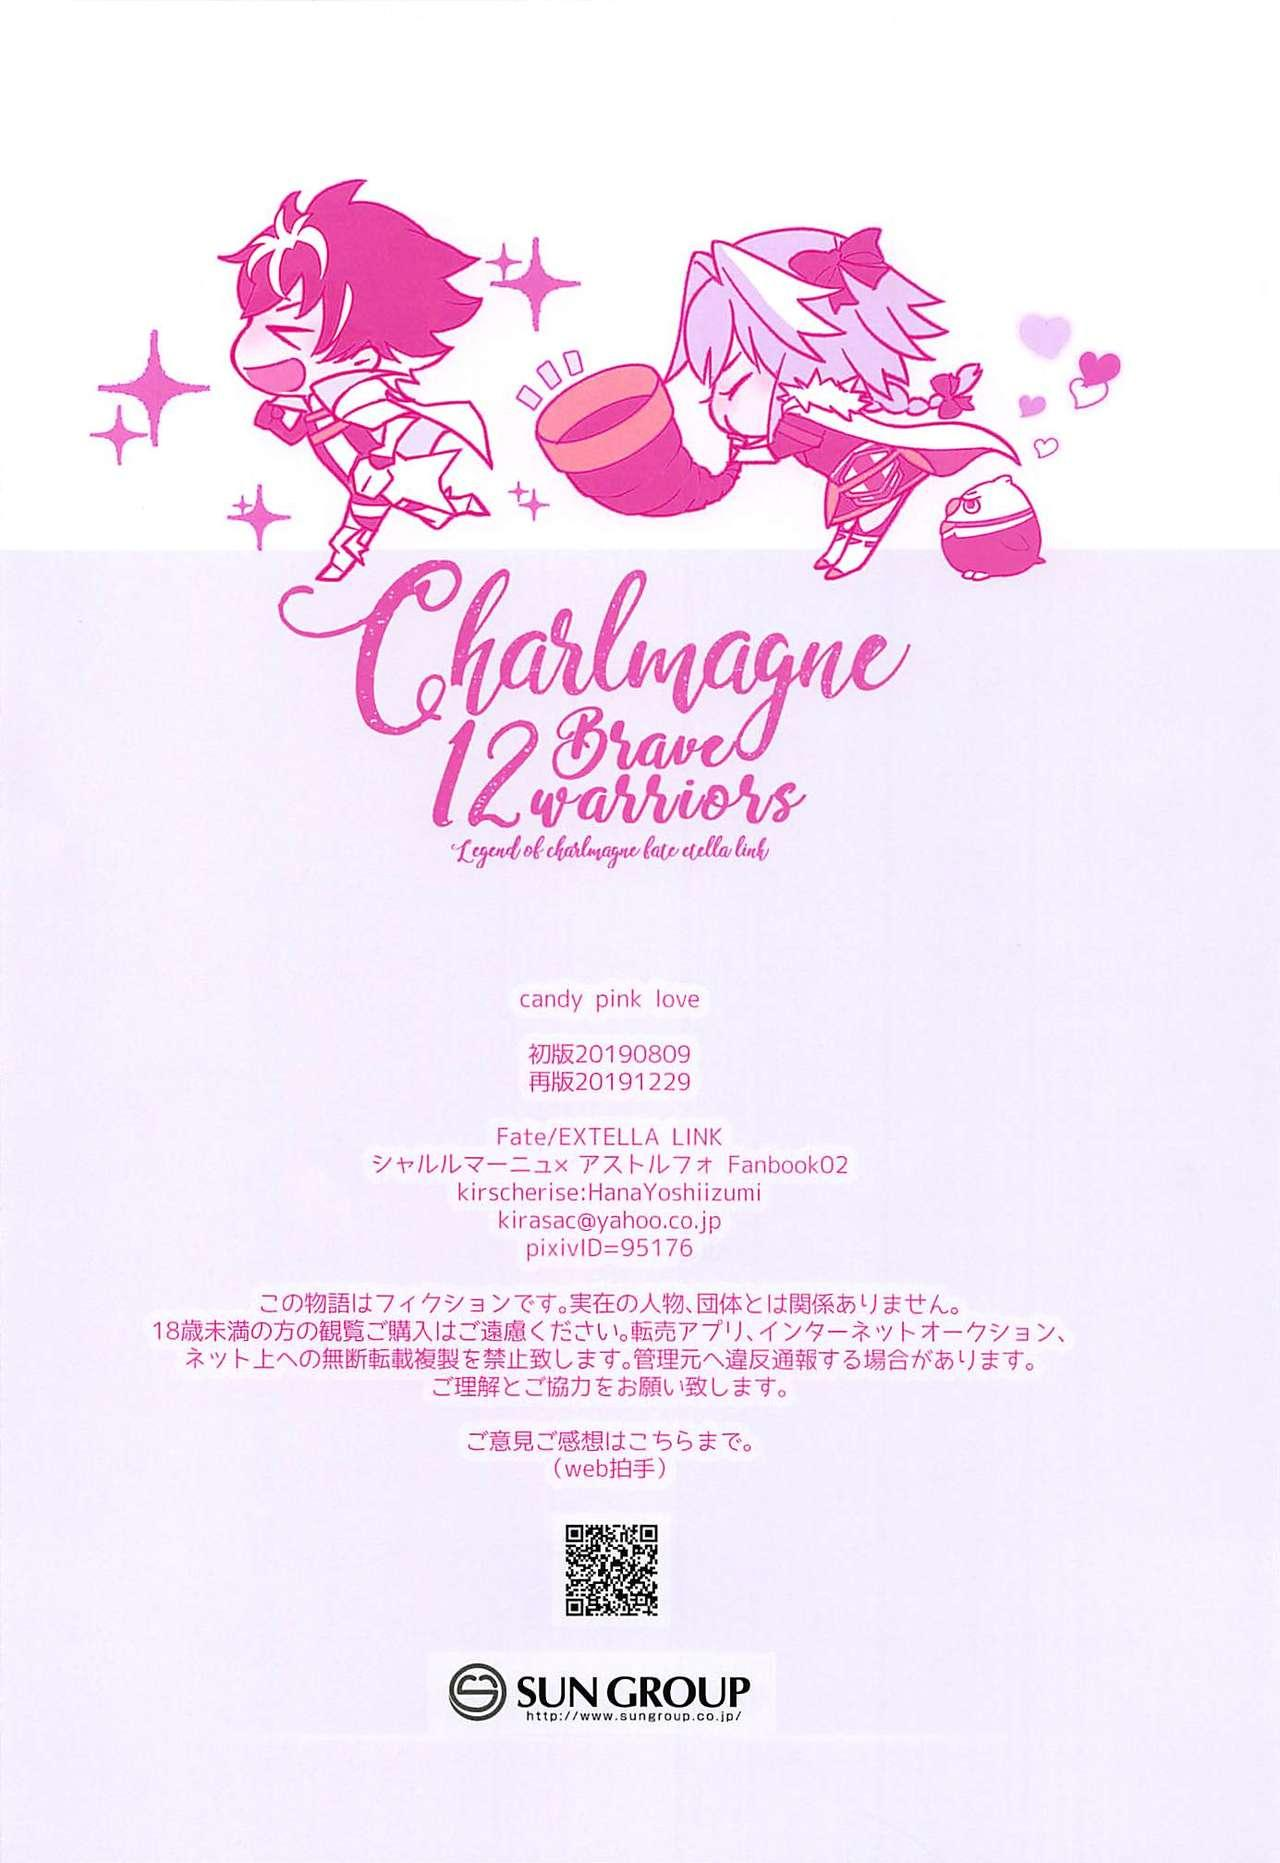 Candy Pink Love 12